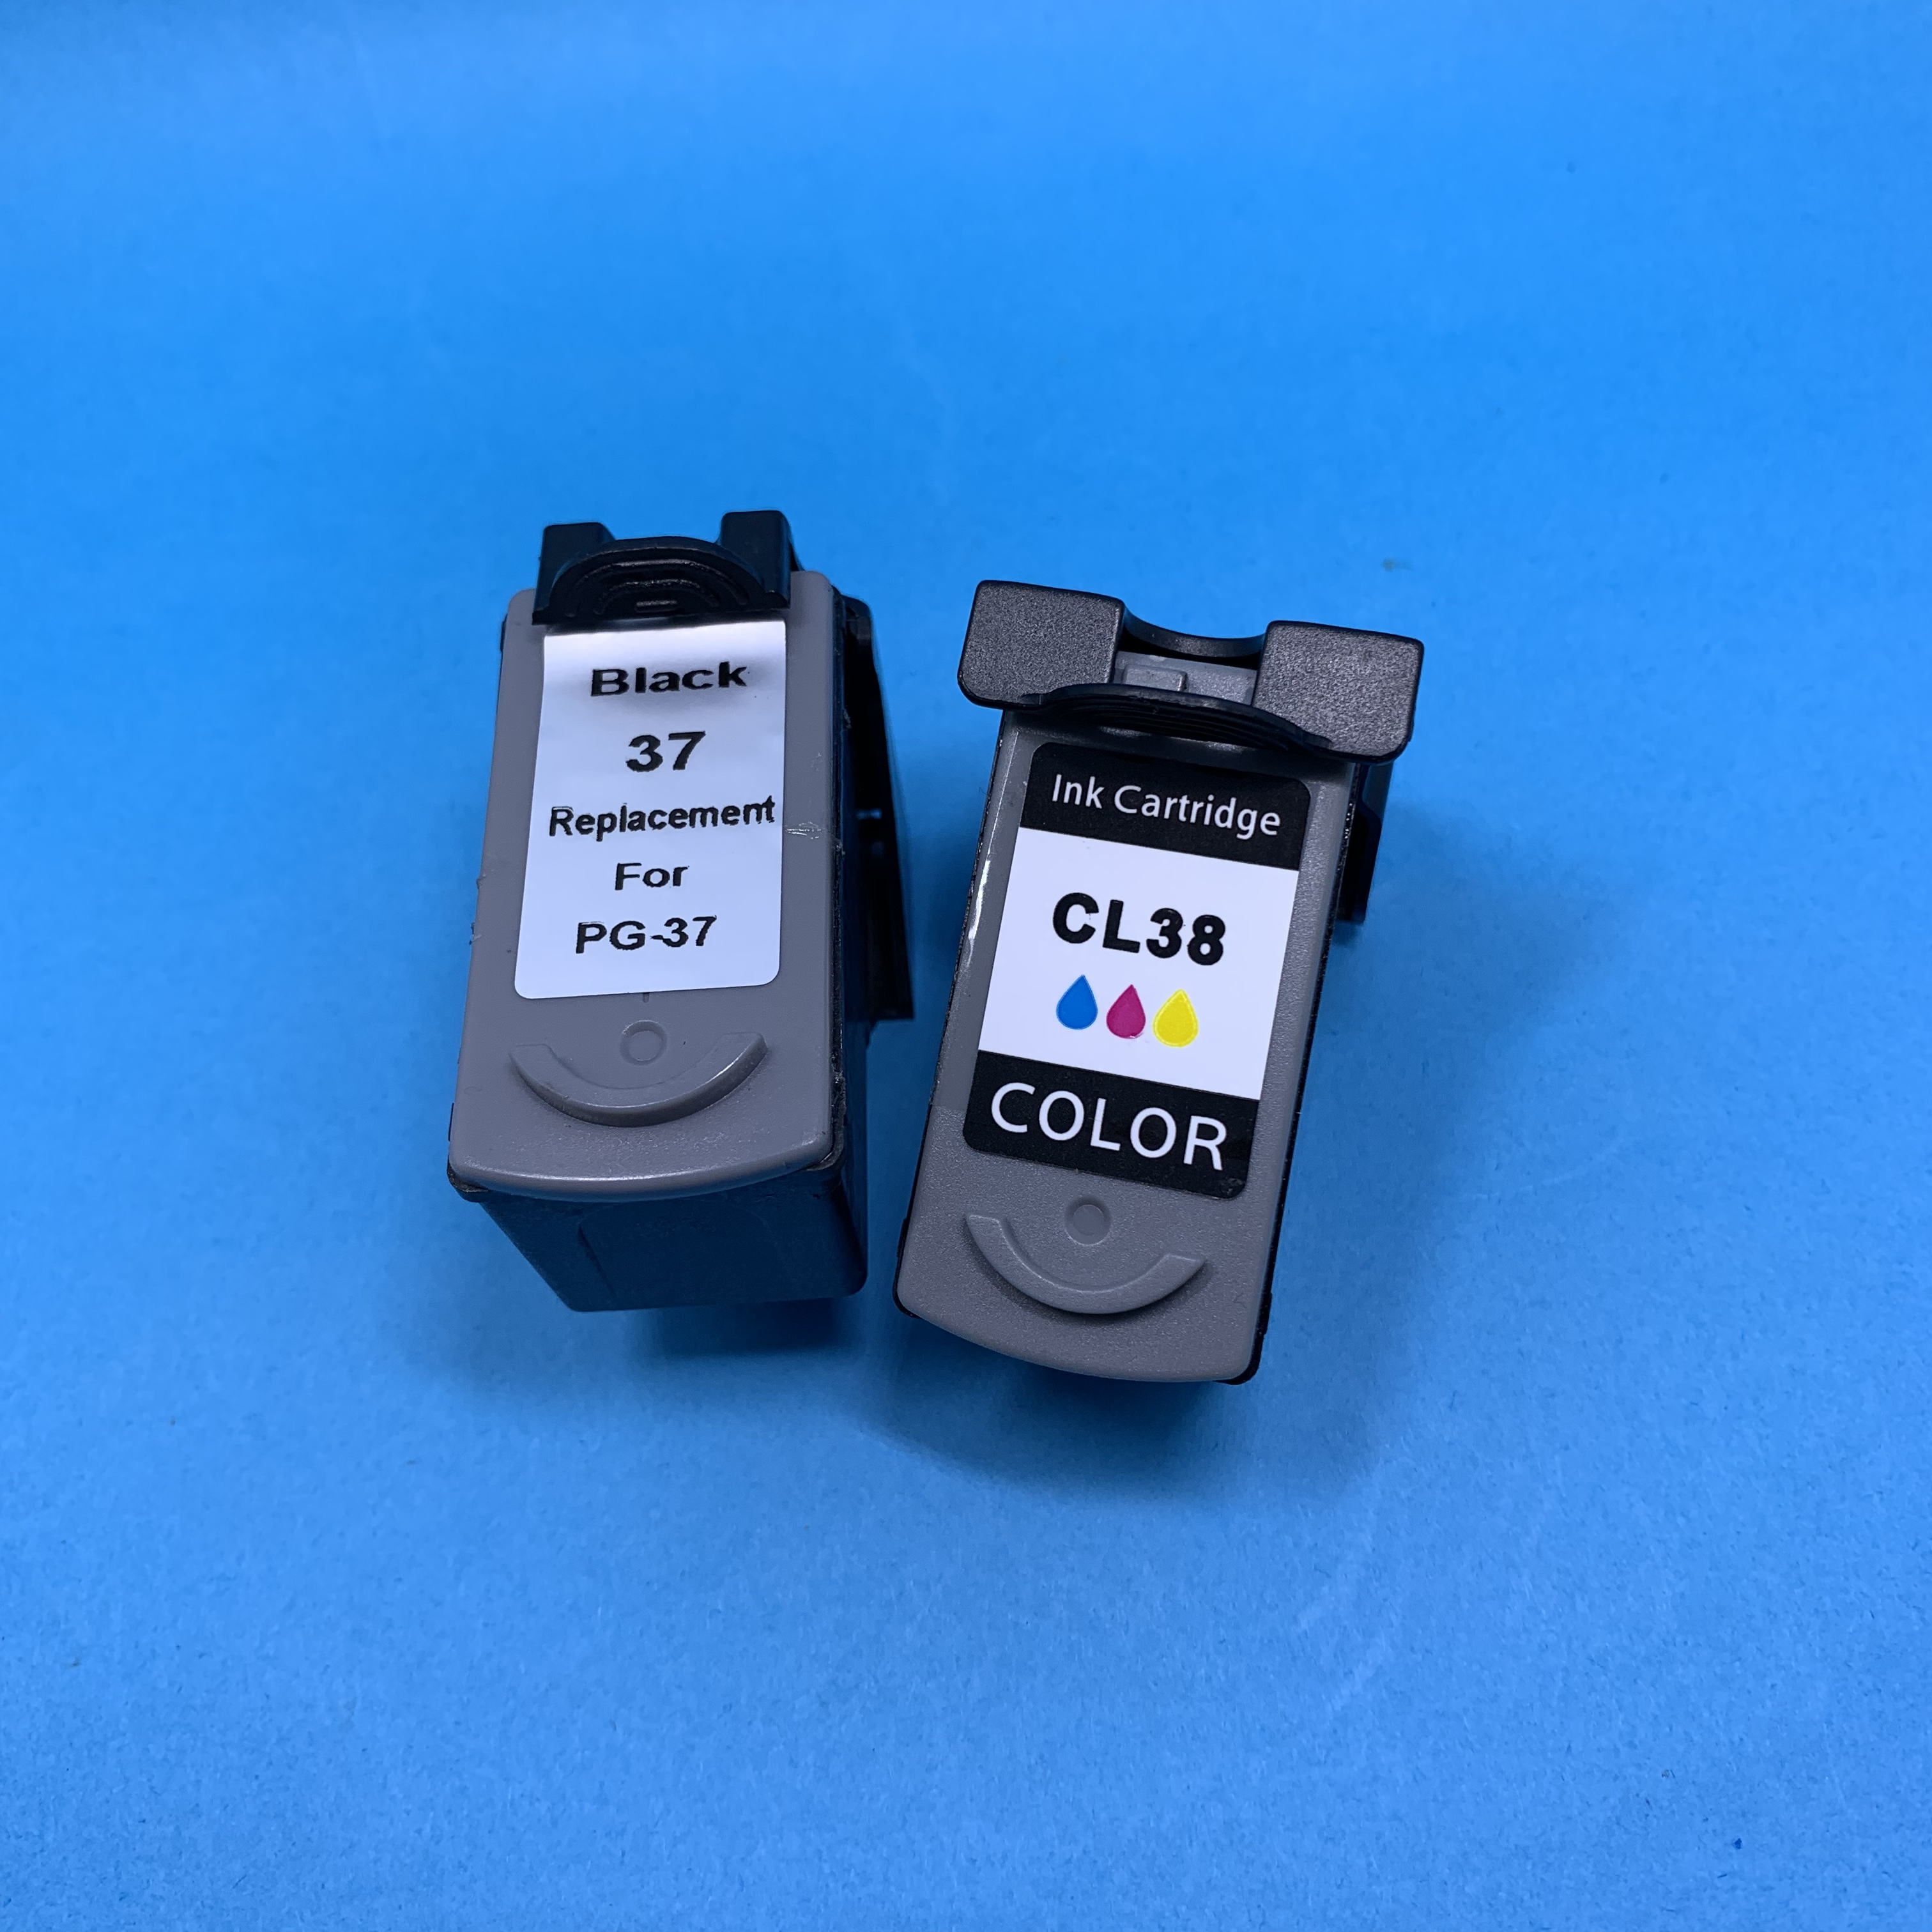 YOTAT Remanufactured Ink Cartridge PG37 PG 37 CL 38 for Canon pixma P210 MP220 IP260 IP1900 IP1800 IP2500 MX300 MX310 mini260-in Ink Cartridges from Computer & Office on AliExpress - 11.11_Double 11_Singles' Day 1